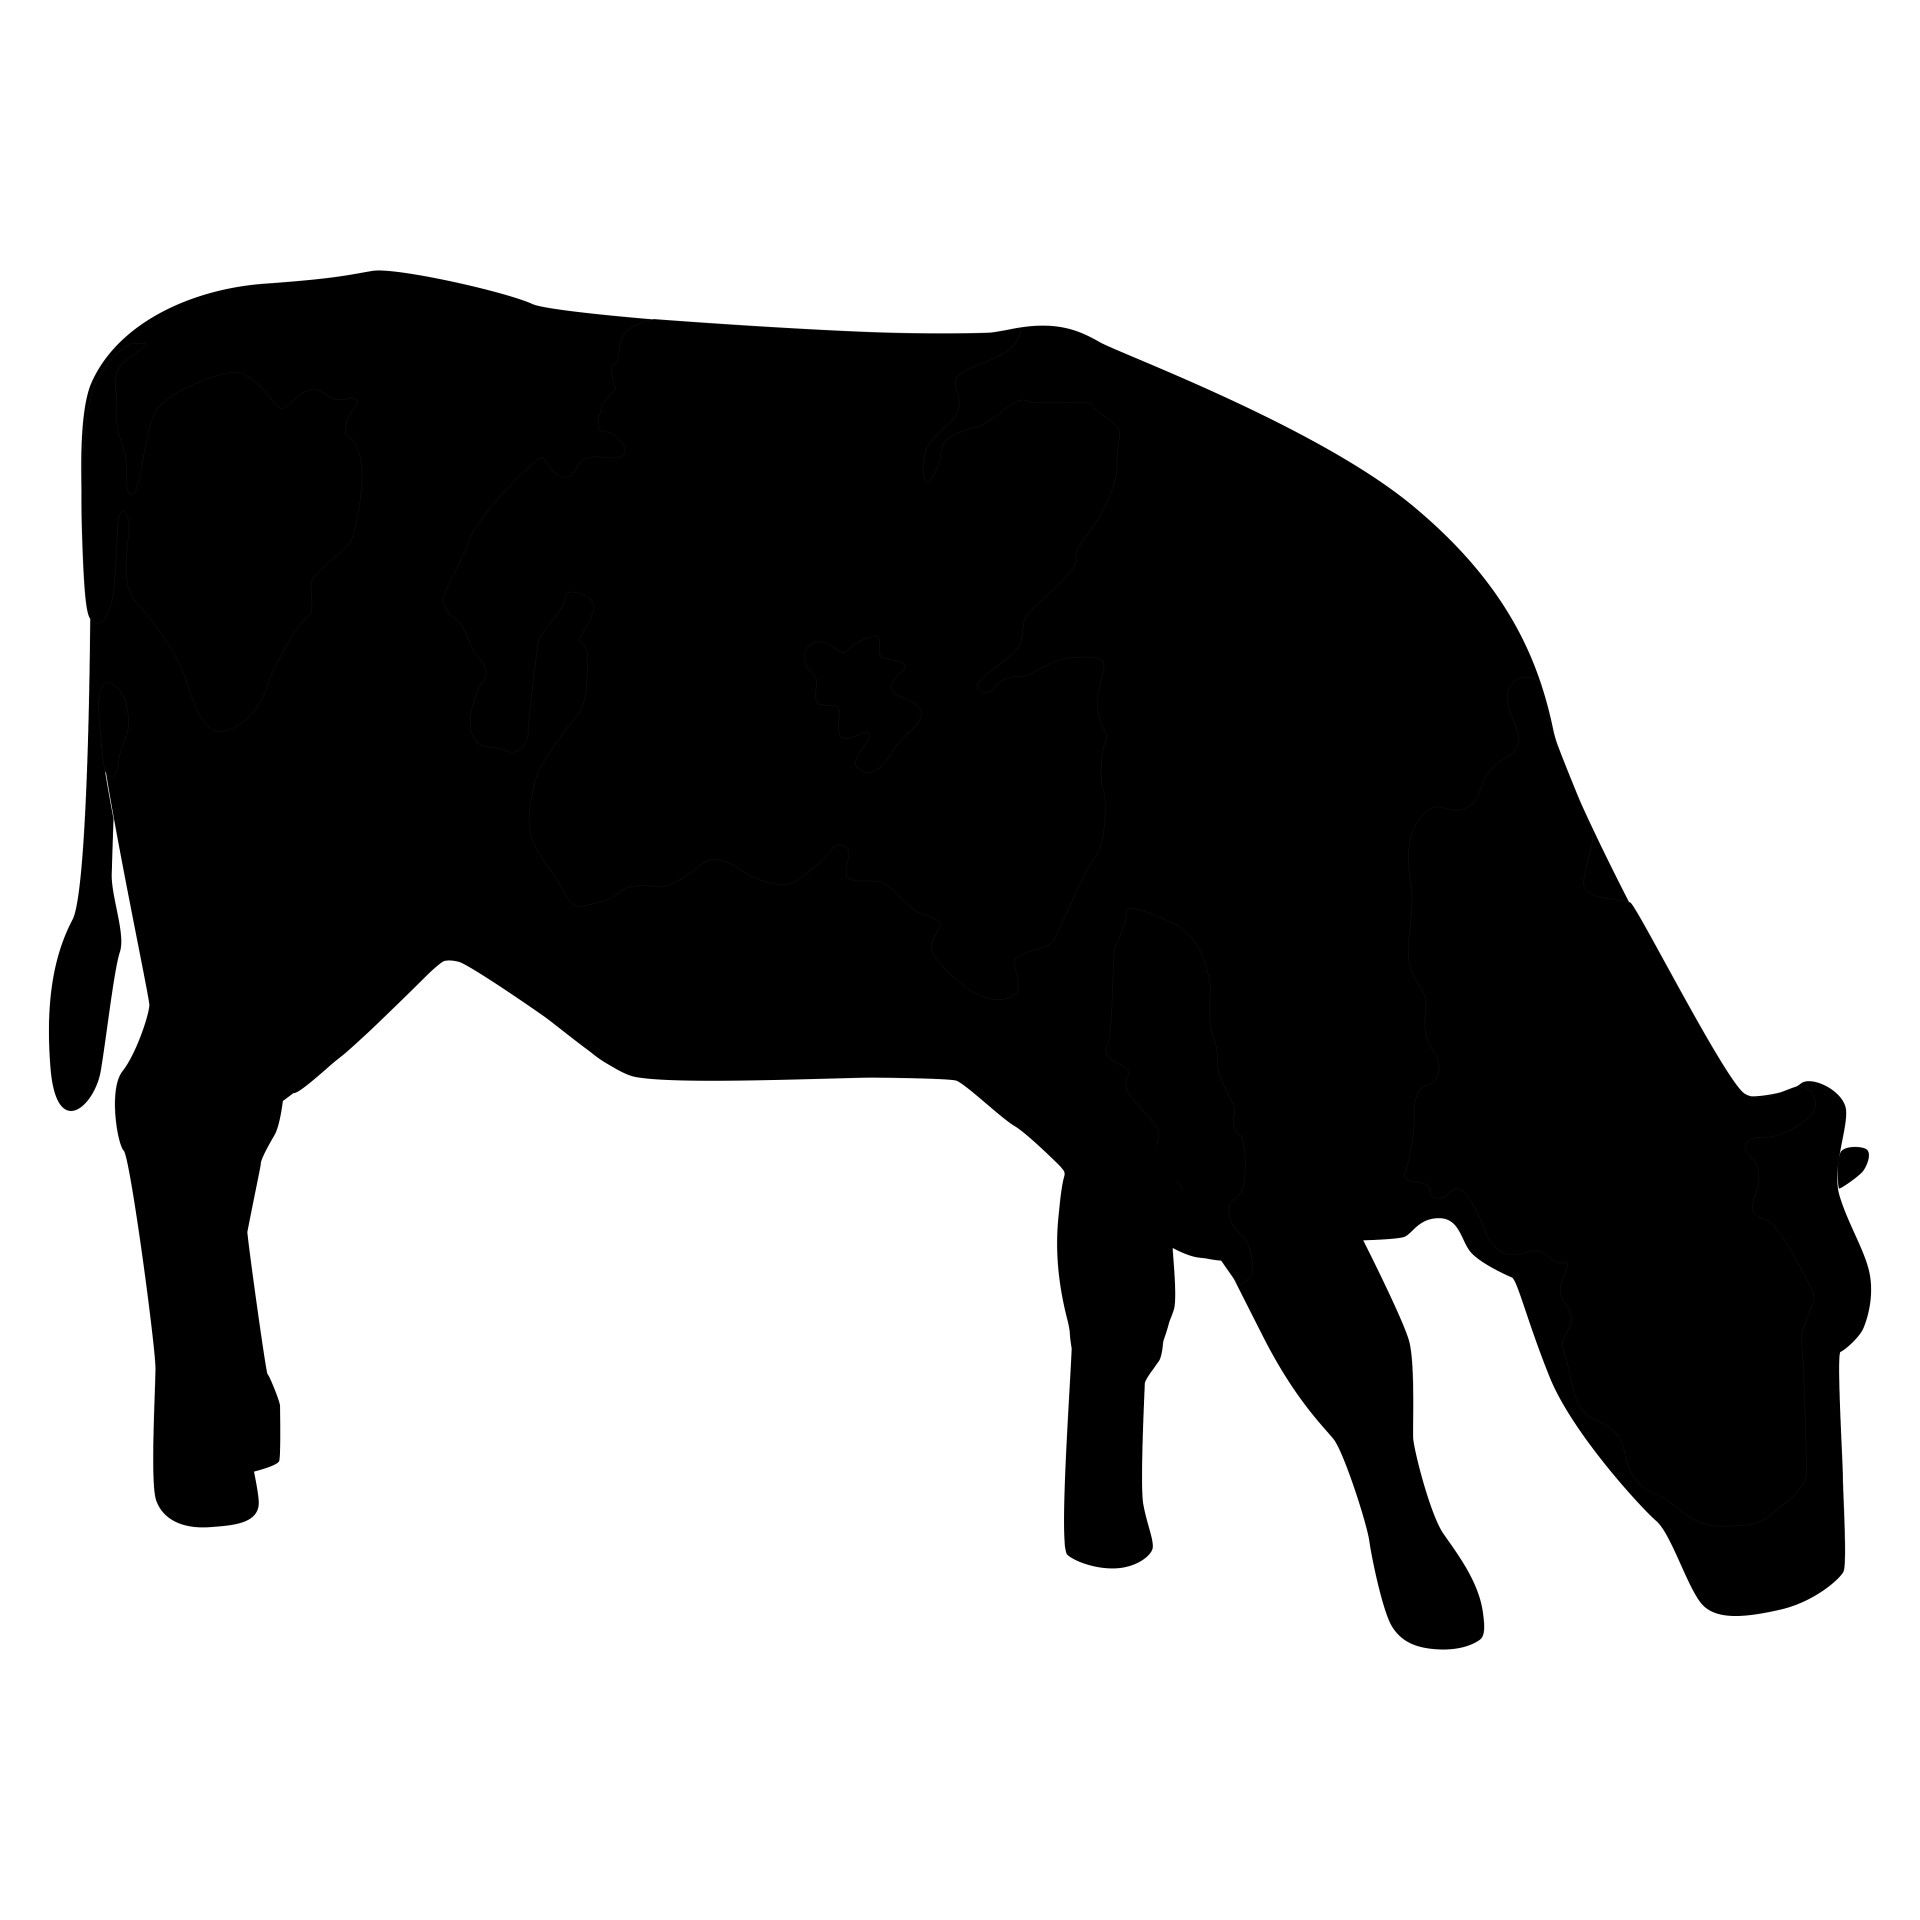 Cow Silhouette Free Stock Photo - Public Domain Pictures | beef ... for Cow And Calf Clipart  285eri